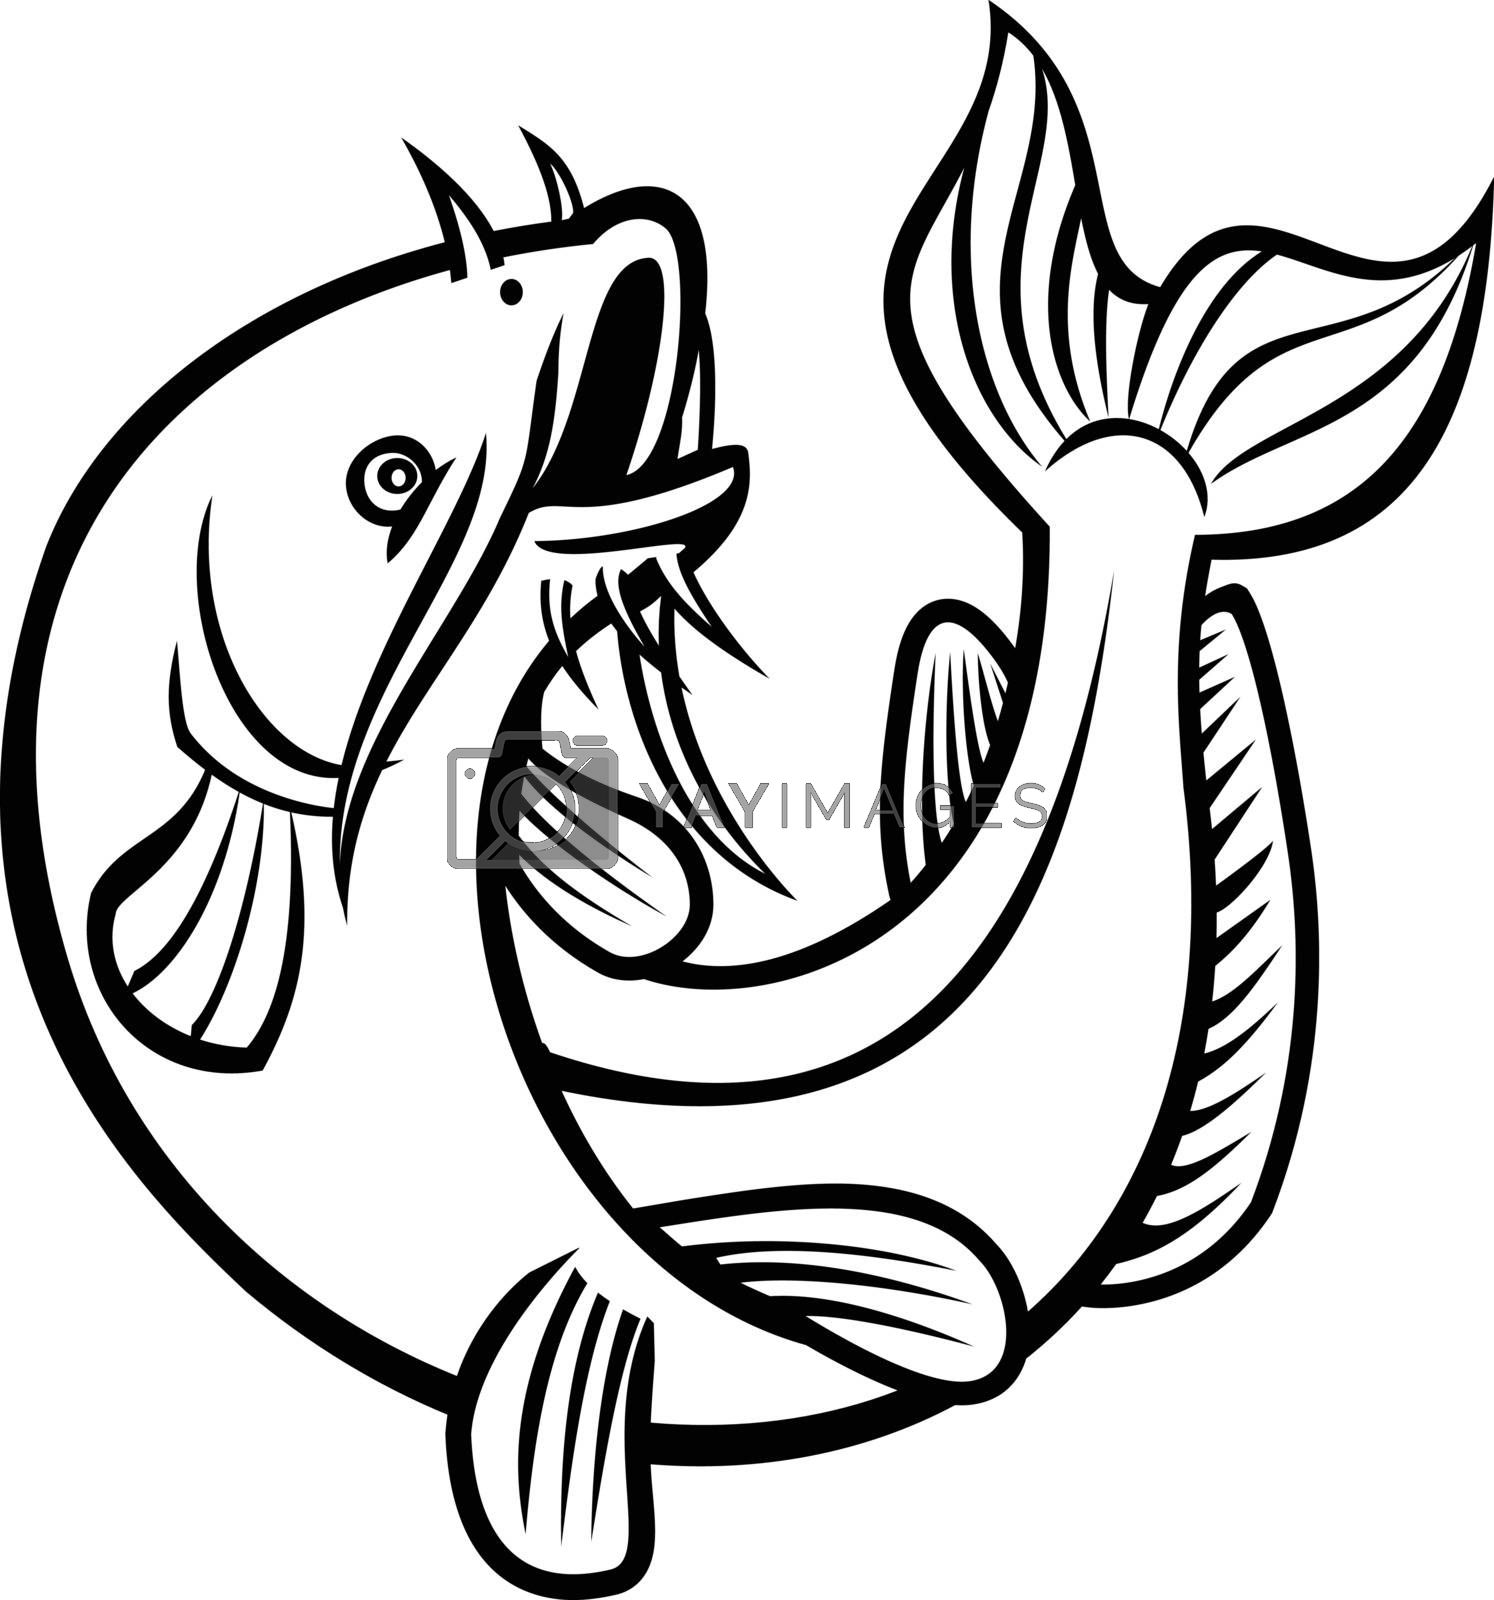 Cartoon or caricature style illustration of a blue catfish Ictalurus furcatus, North America's largest catfish species, jumping up on isolated white background done in black and white.